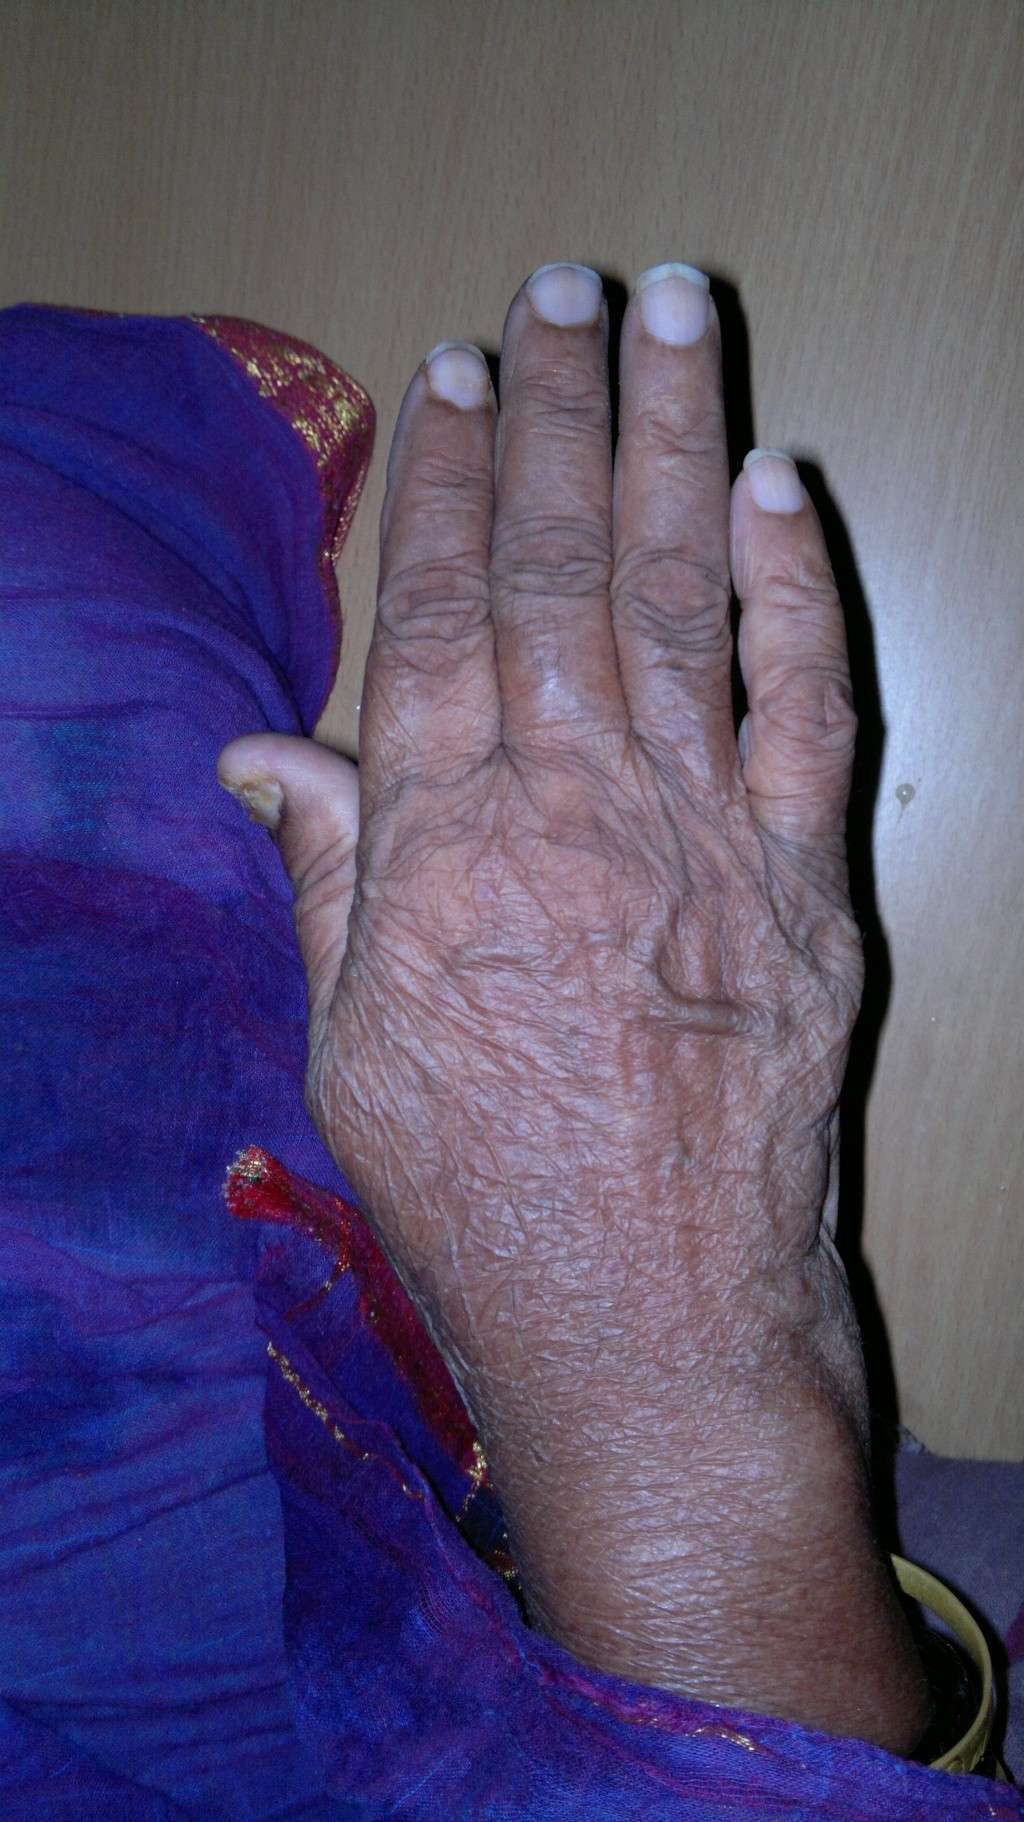 The Hands of Alzheimer's Patient 08042016